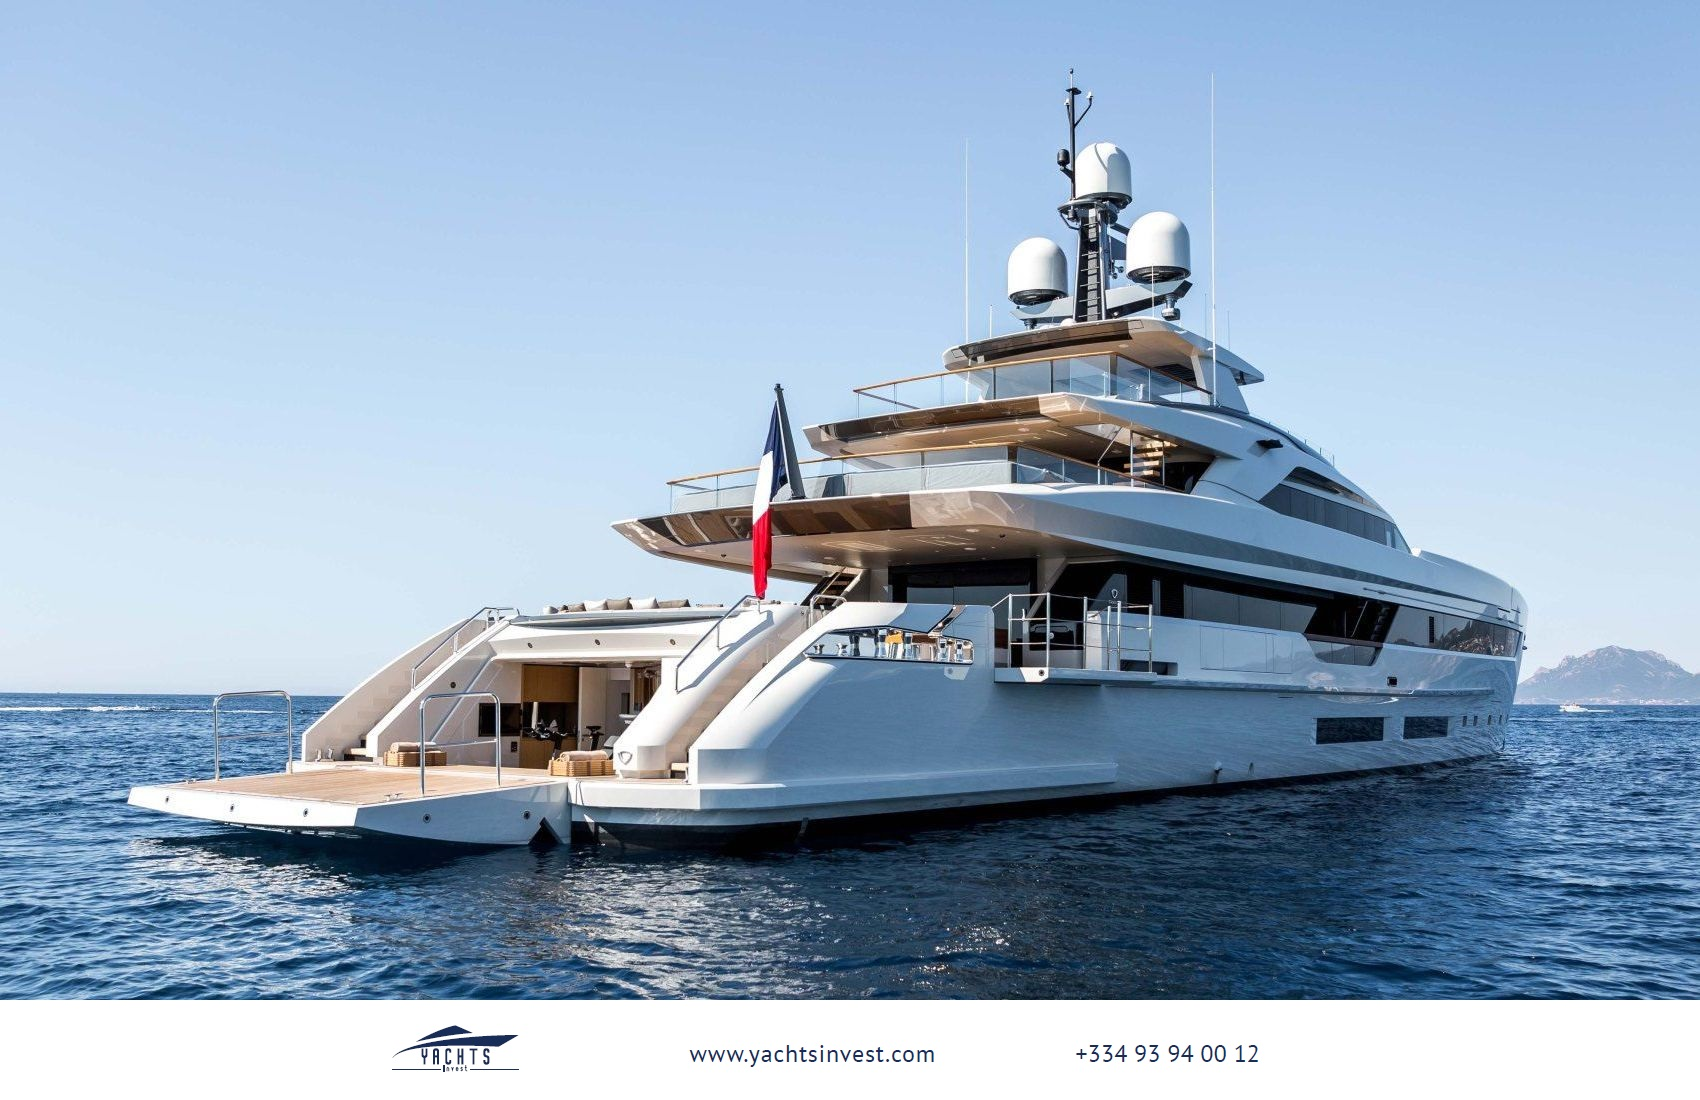 YACHTS INVEST Celebrates its First Decade